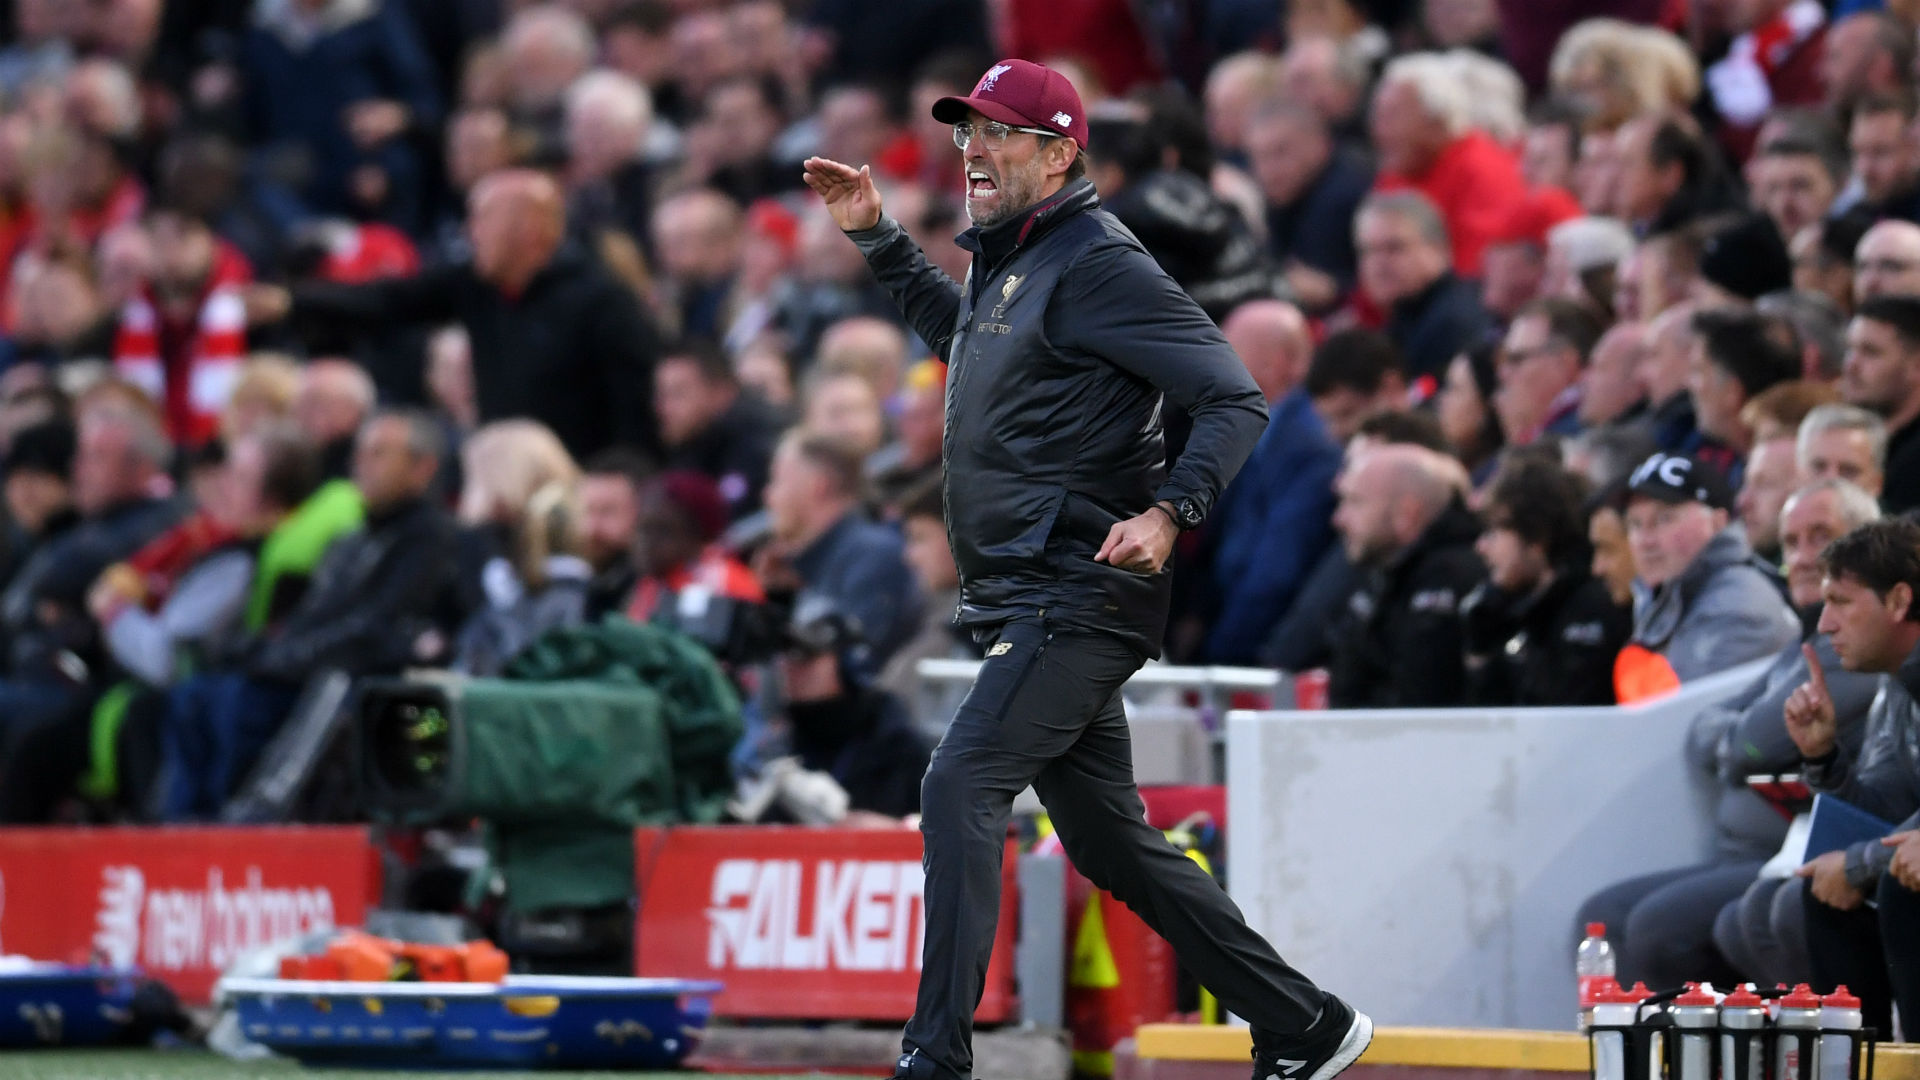 Jurgen Klopp says Nations League is most senseless competition in the world